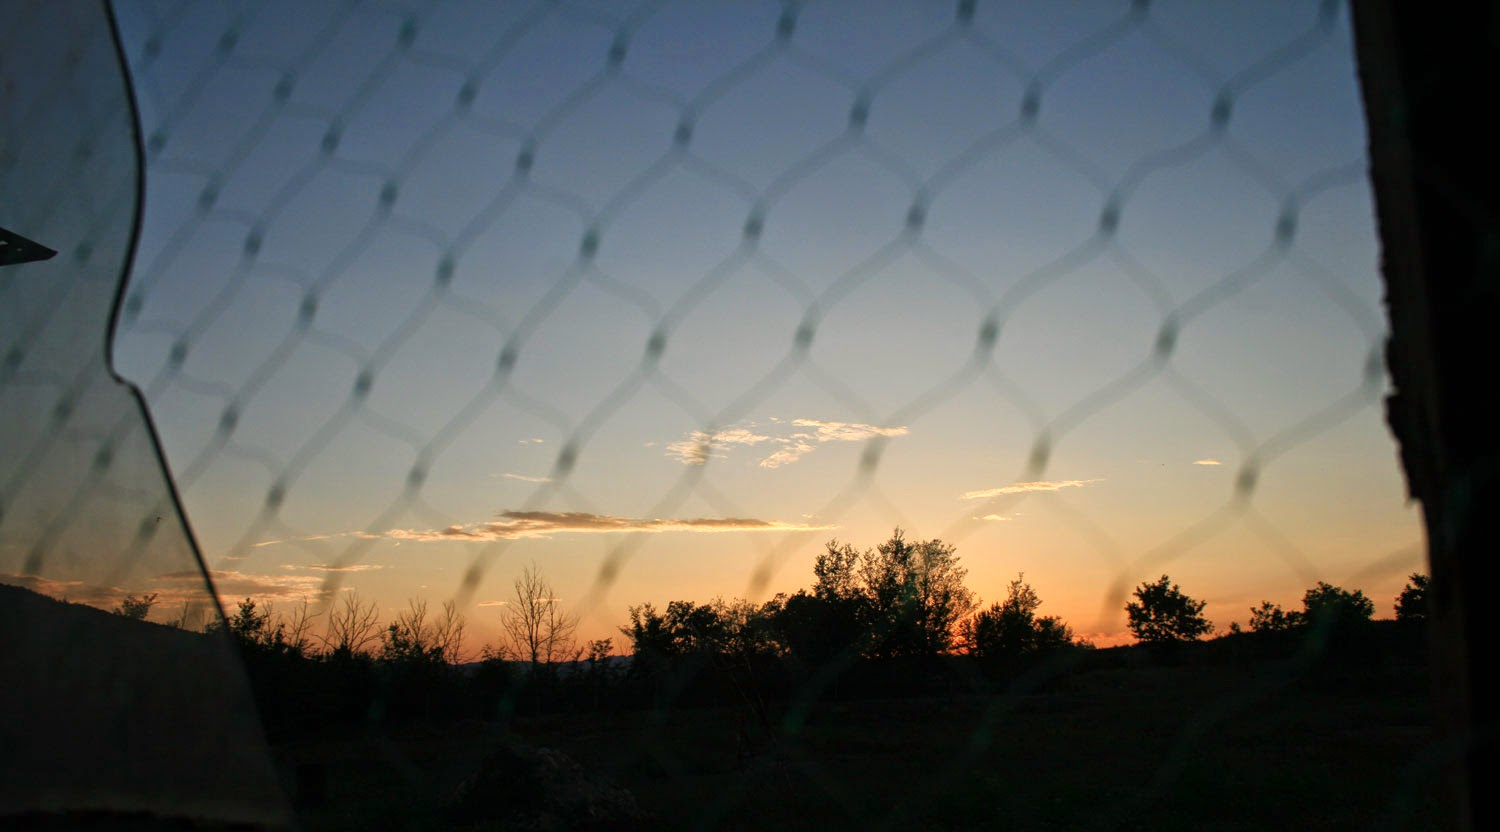 Sunset through bird netting